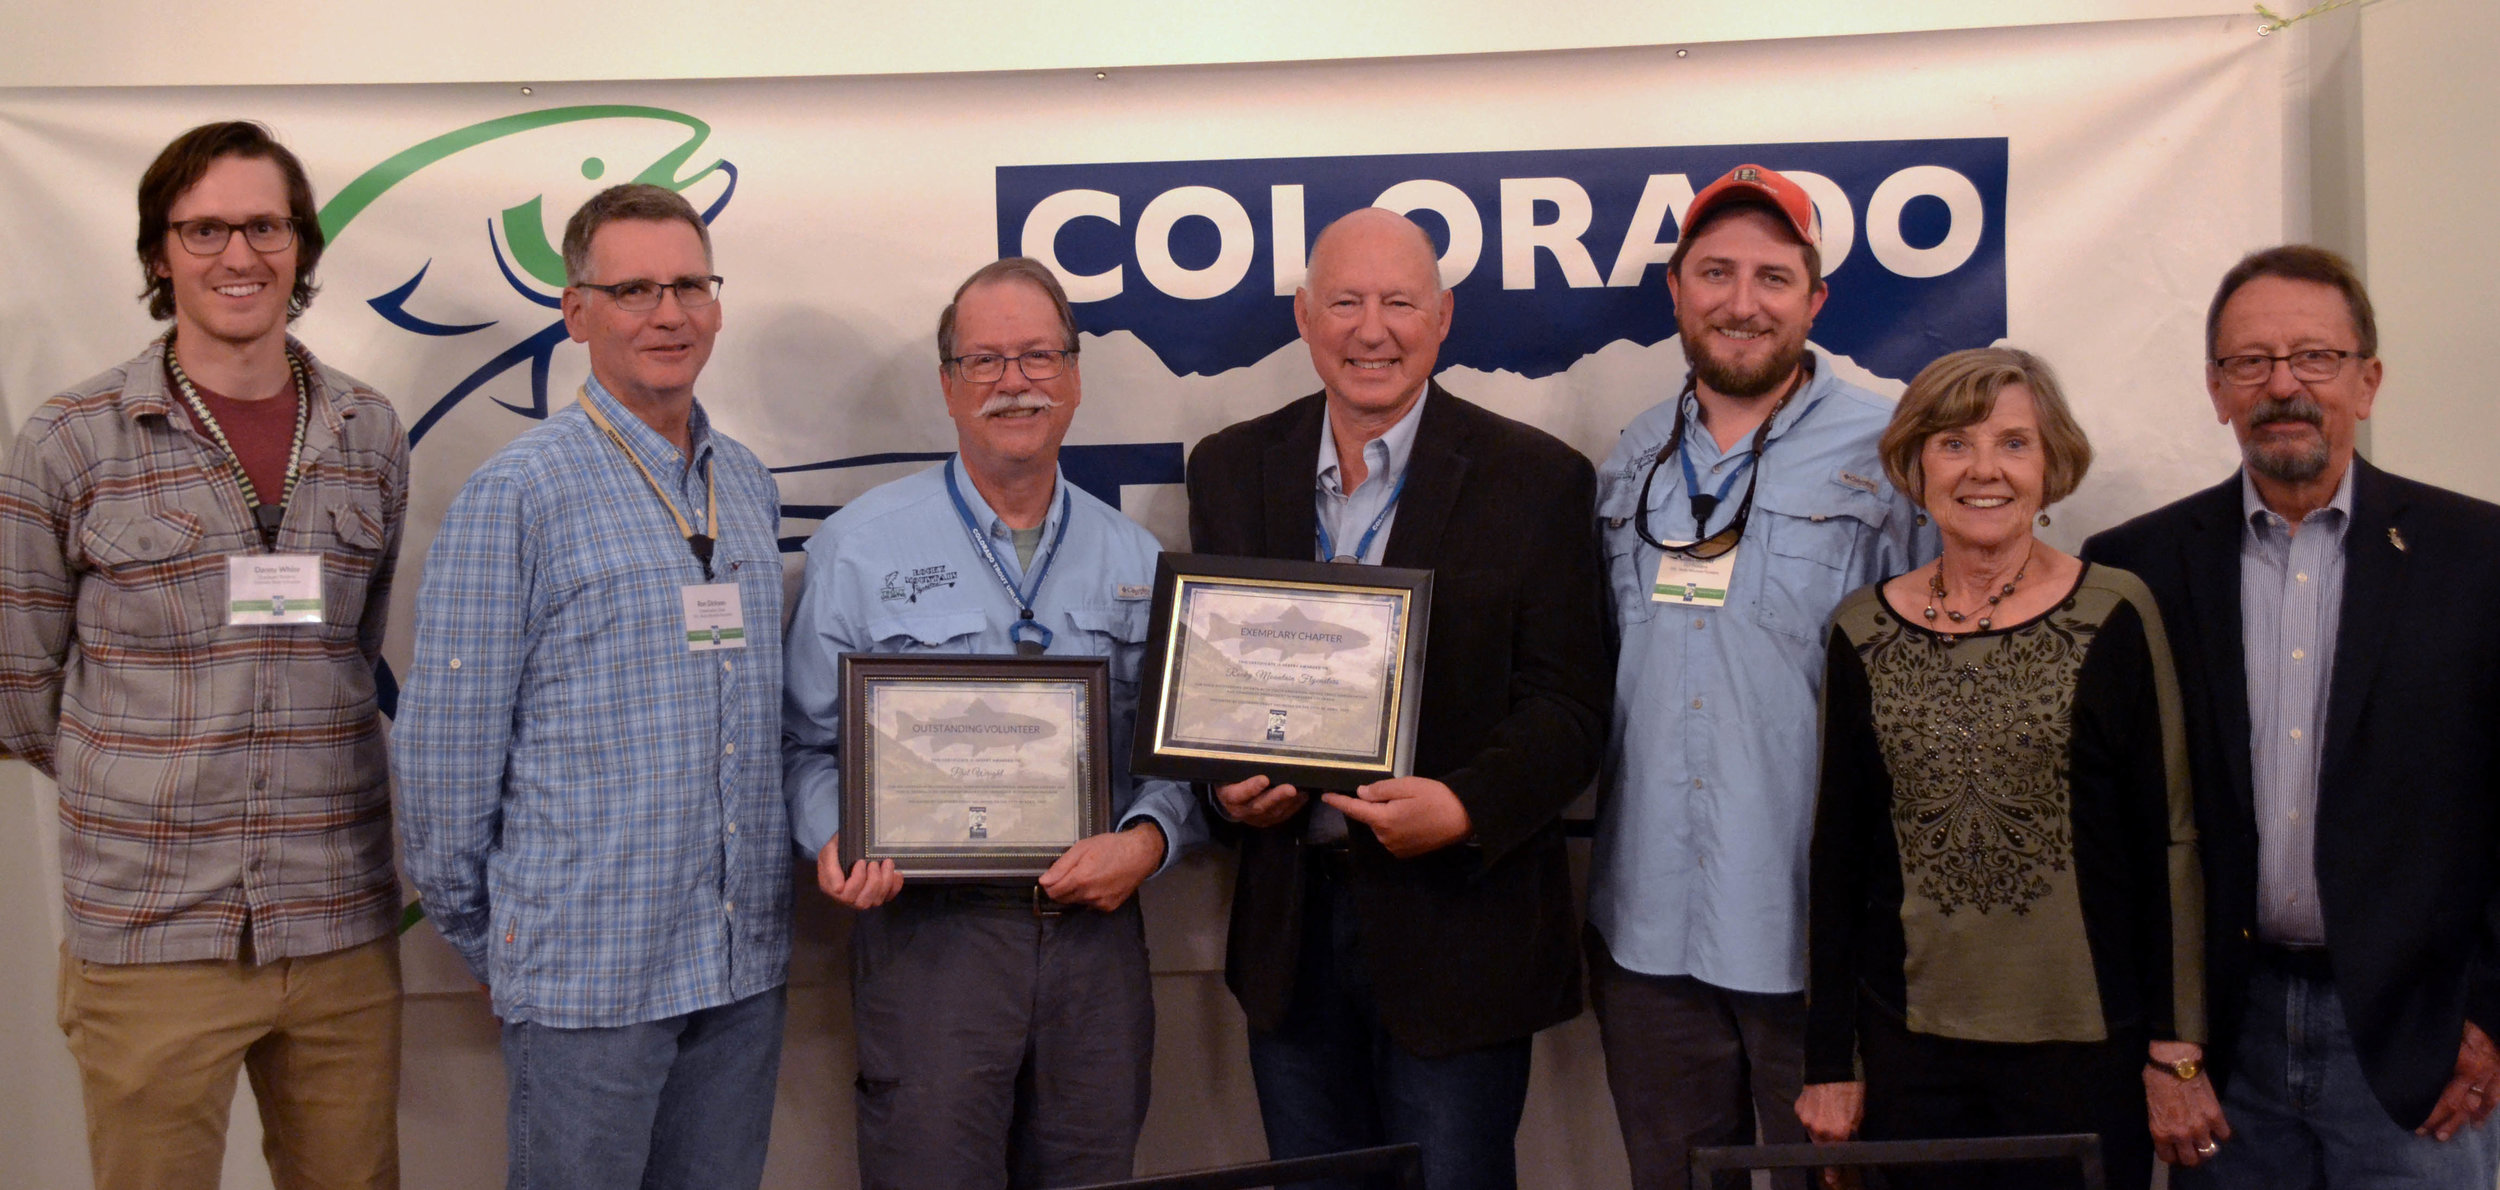 Rocky Mountain Flycasters Chapter received the Exemplary Chapter award (middle right) as well as the Outstanding Volunteer award going to member Phil Wright. (middle left)